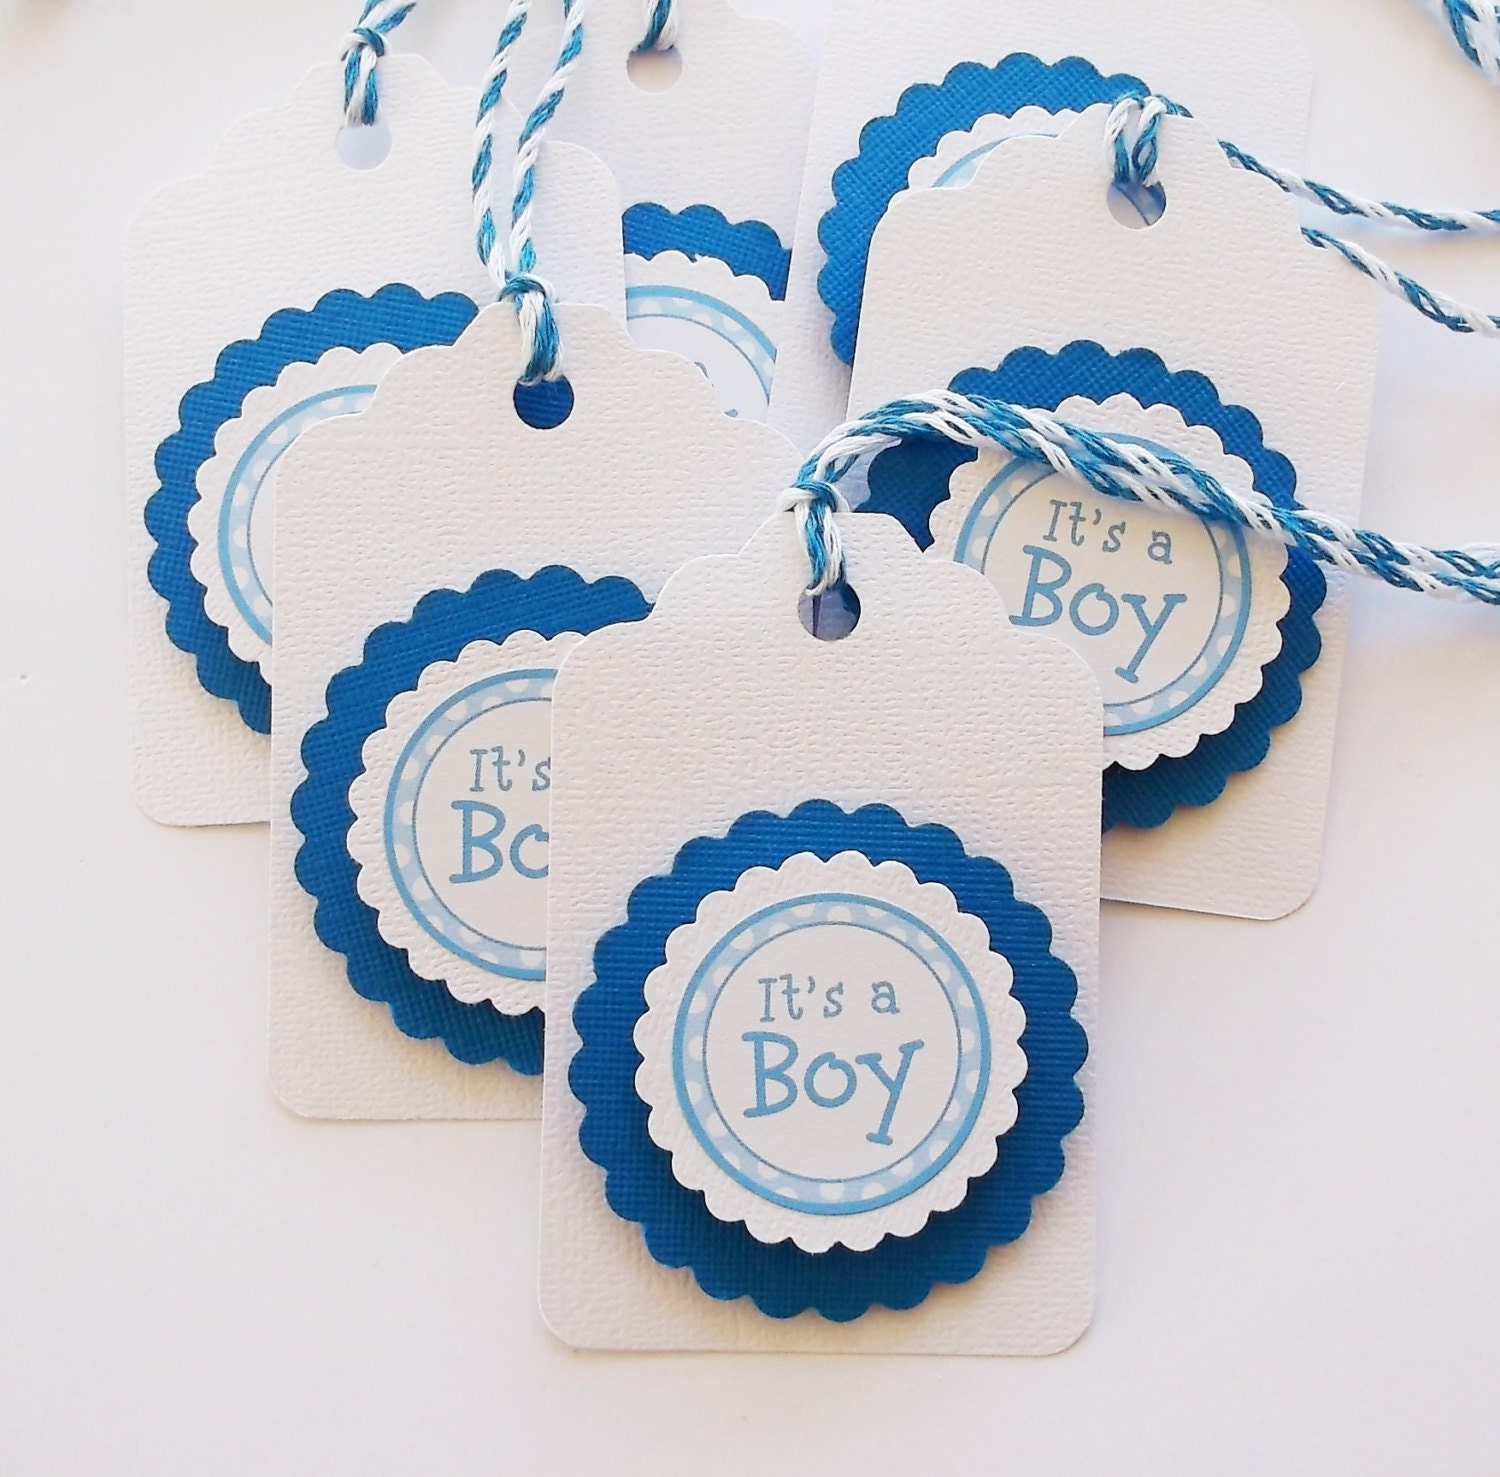 Baby Boy Gift Tags : Chandeliers pendant lights